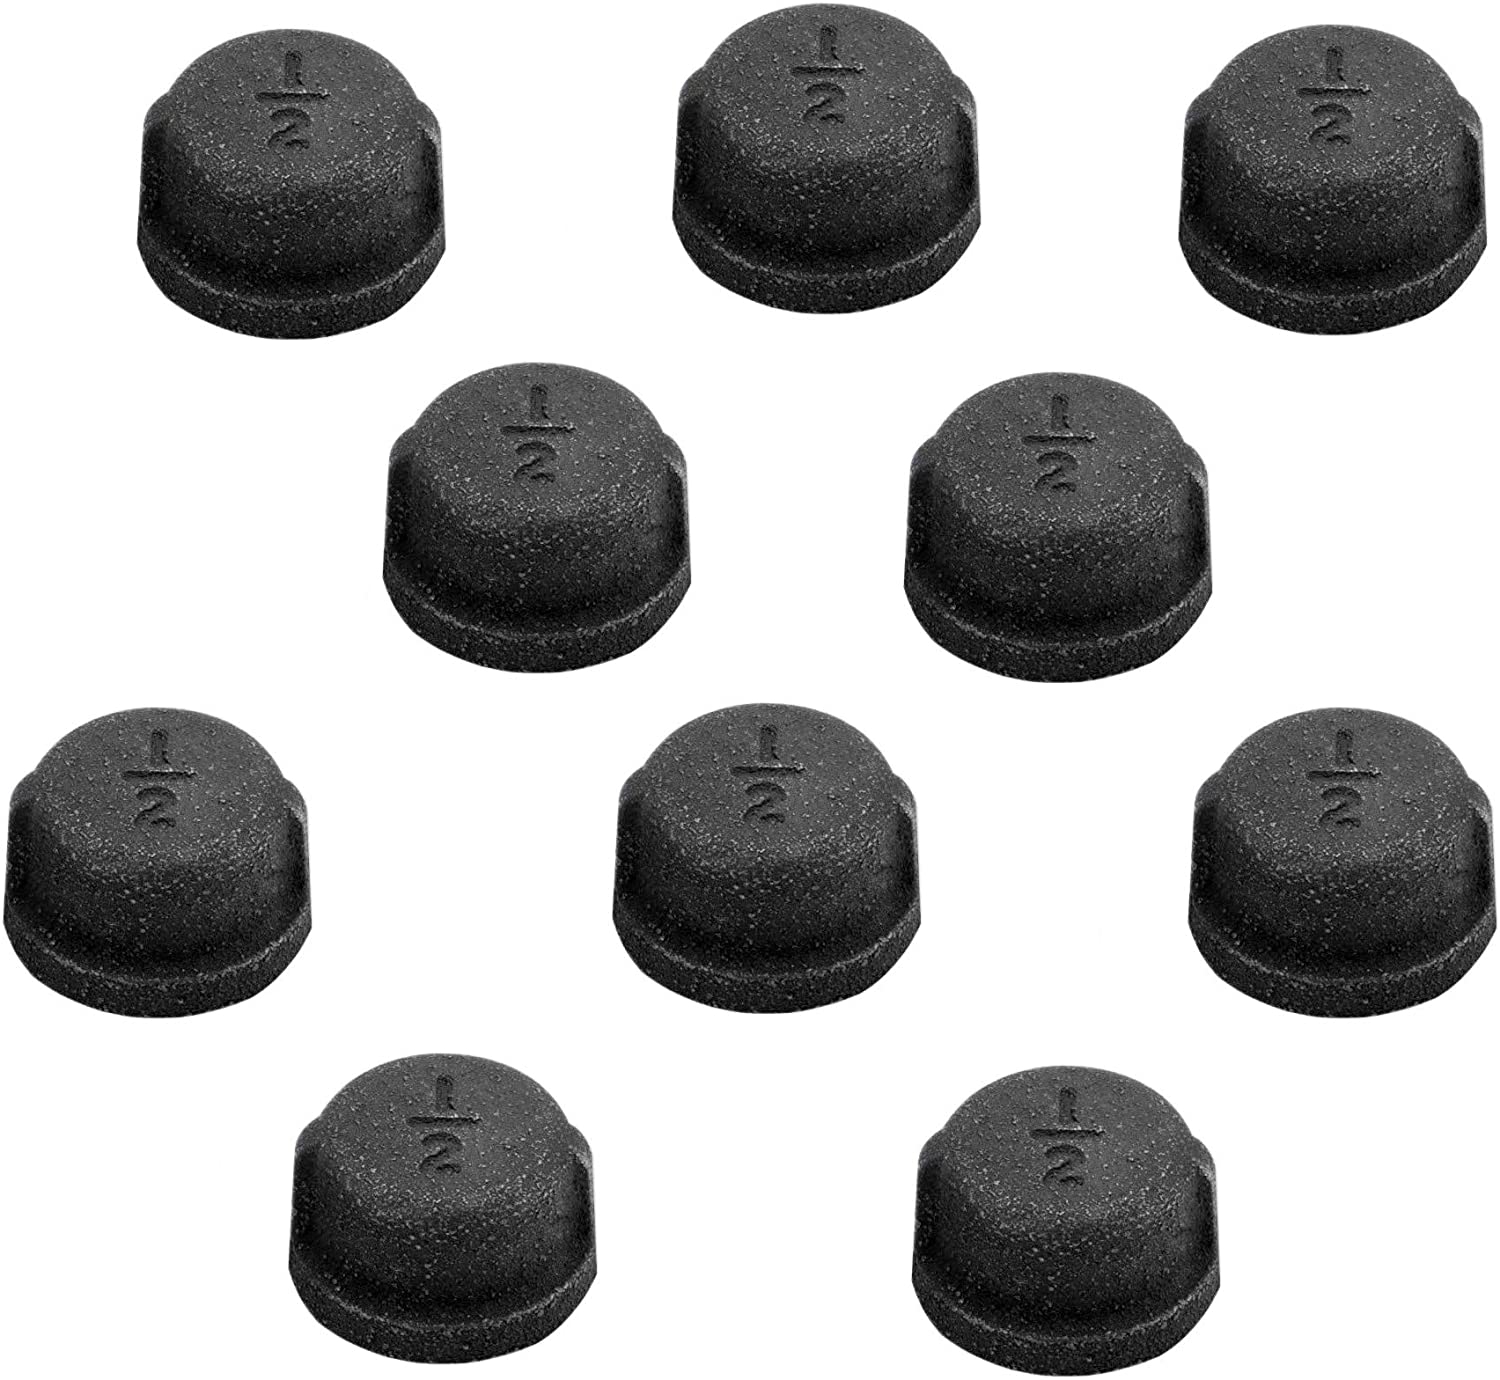 1/2 Inch Black Malleable Iron Cast Pipe Fitting Cap, 10 Pack Black Pipe Caps for Steampunk Vintage Shelf Bracket DIY Plumbing Pipe Decor Furniture (1/2 Inch)